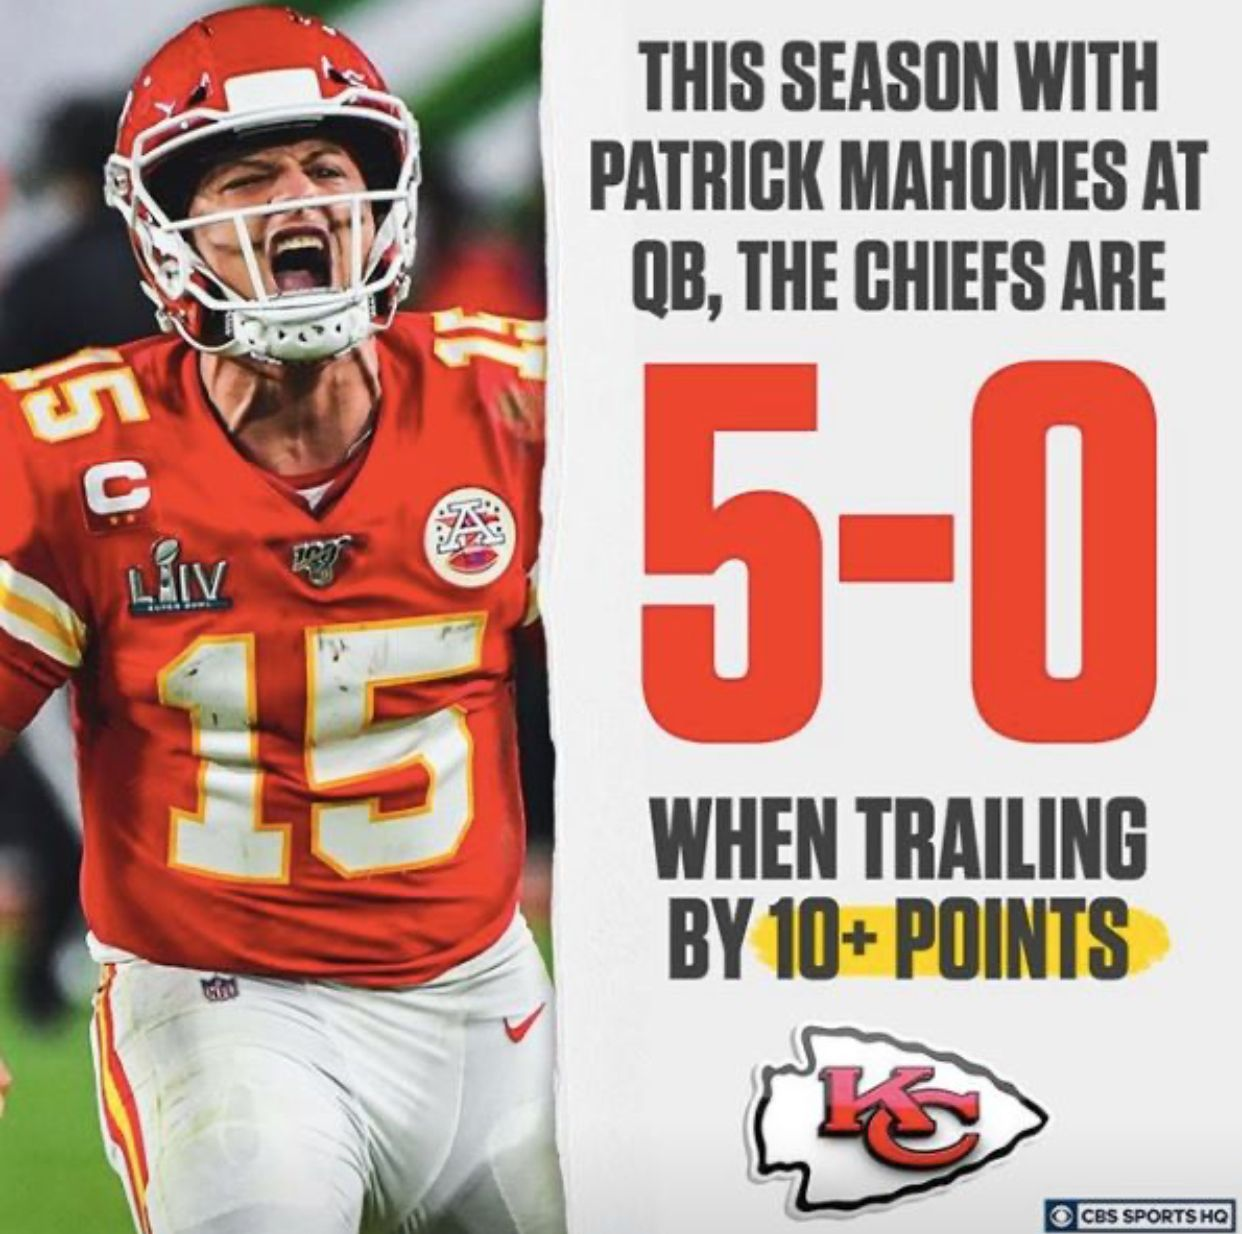 Pin By Kara Fabin On Kansas City Chiefs Arrowhead 4 0 In 2020 Kansas City Chiefs Football Kansas City Chiefs Cbs Sports